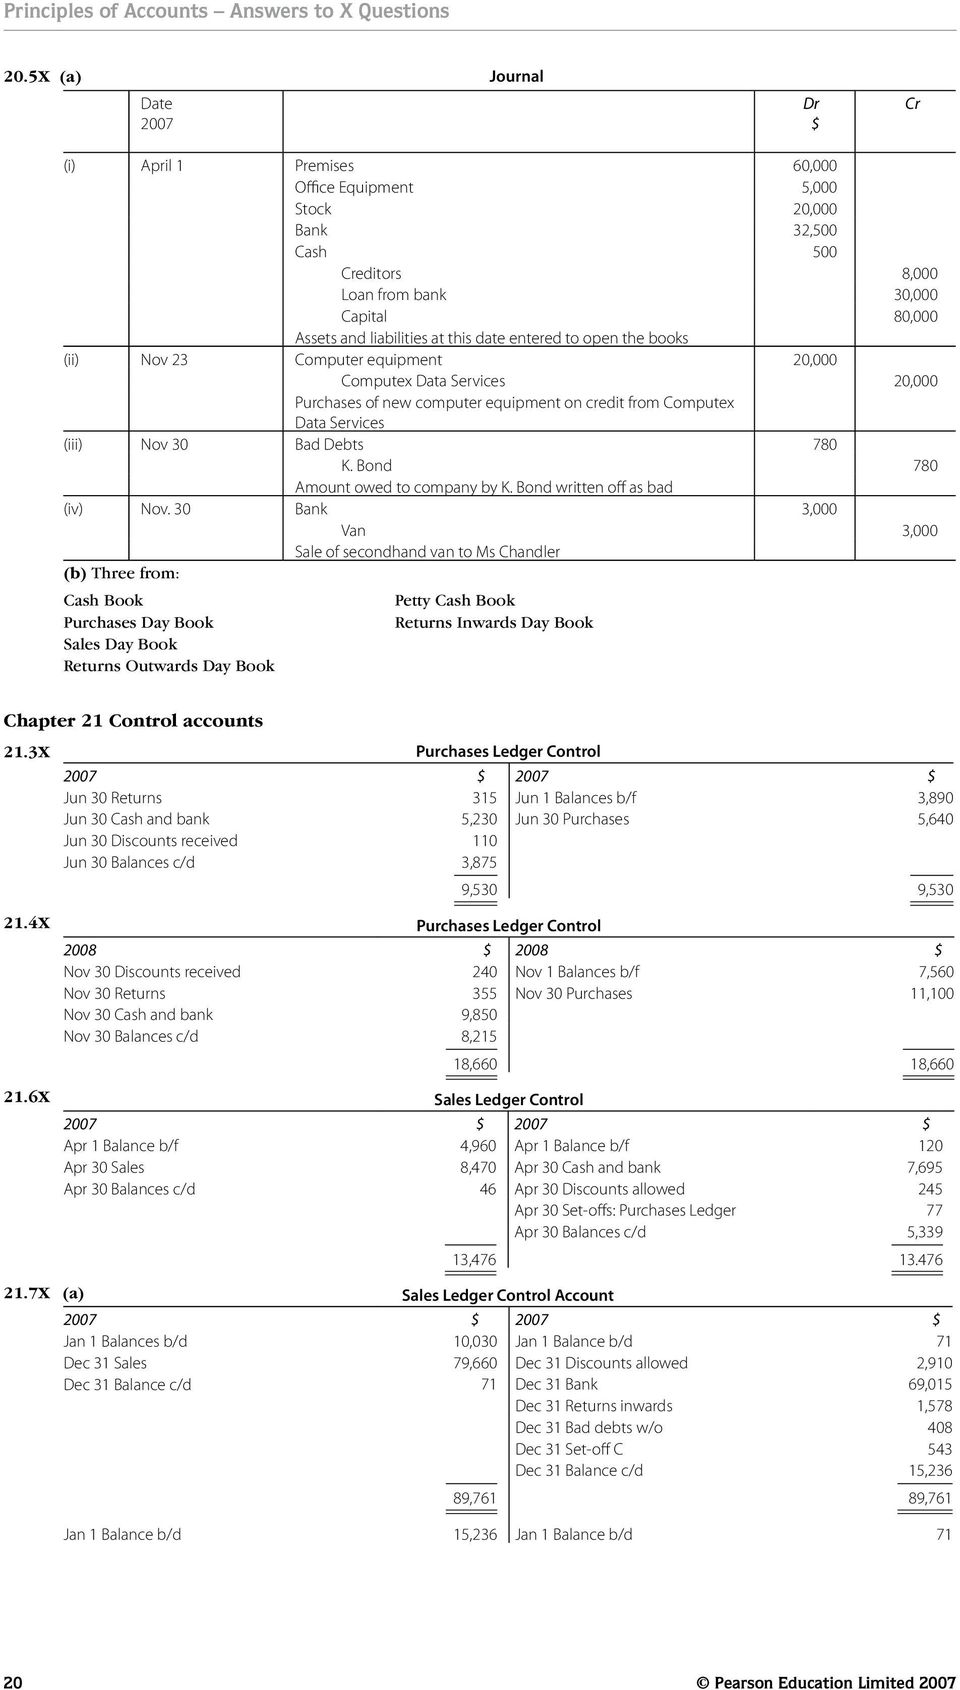 Teacher s manual answers to x questions pdf debts 780 k bond 780 amount owed to company by k bond written off fandeluxe Images